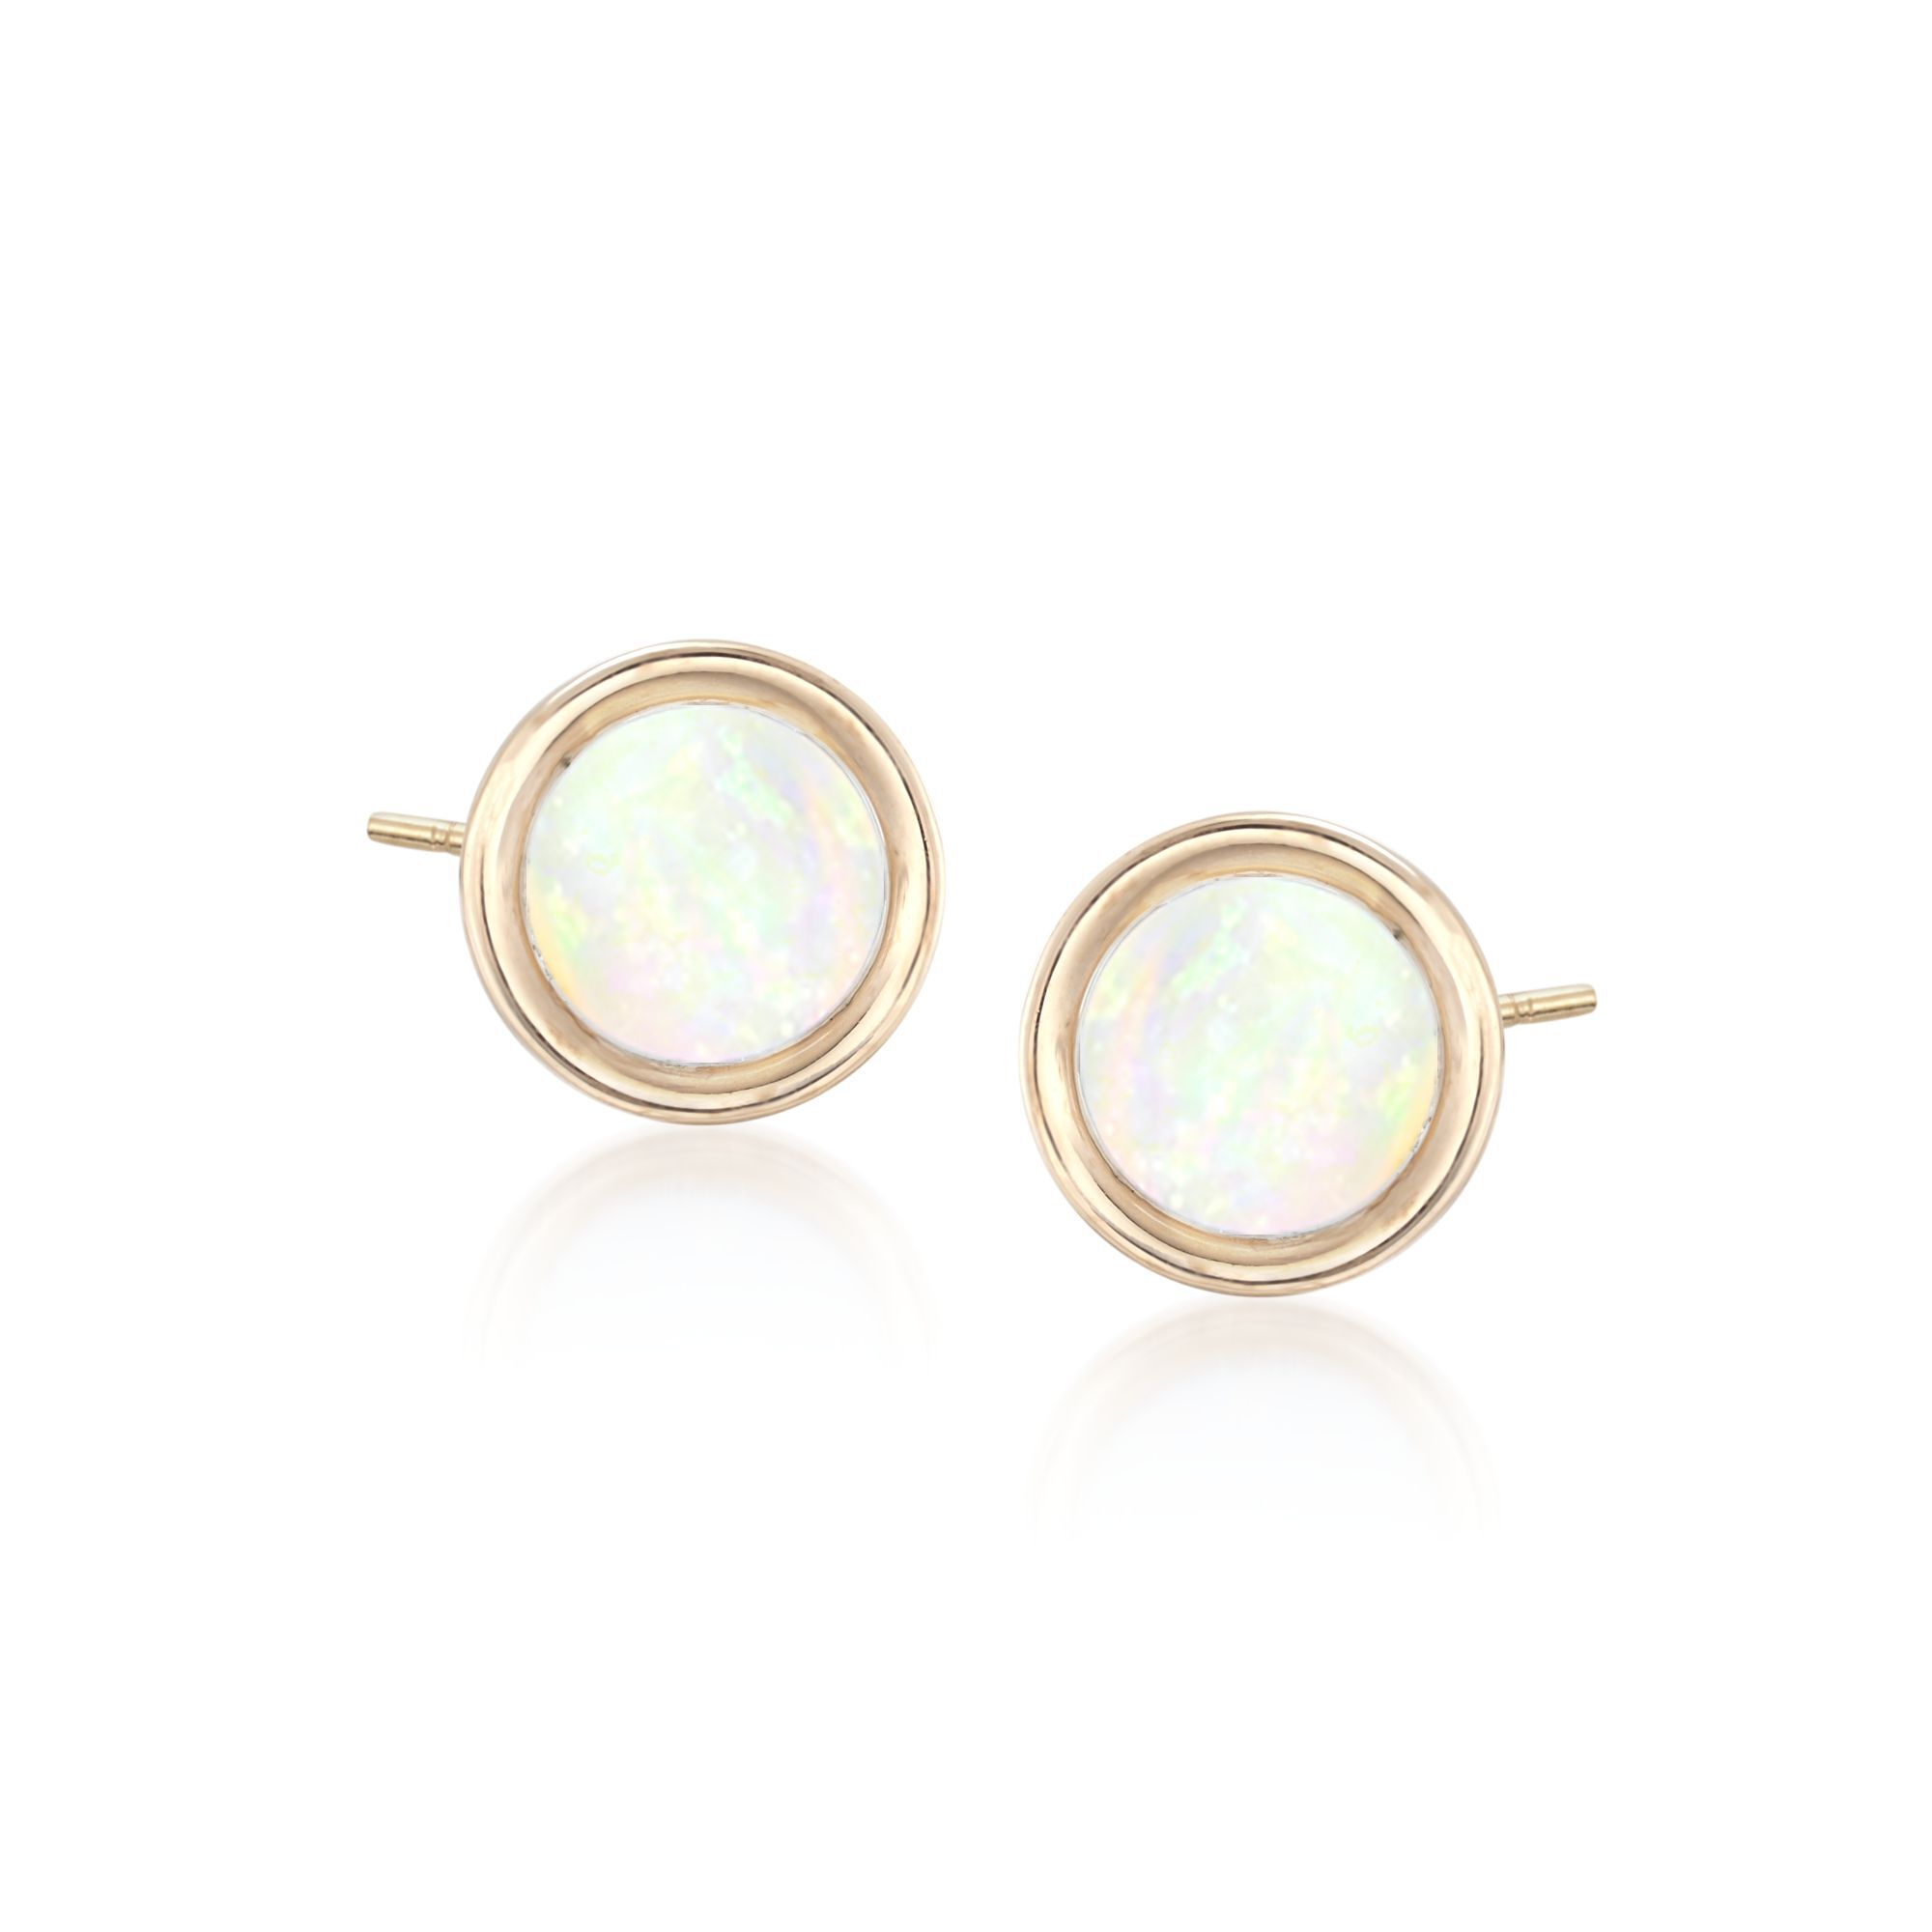 1 Pair STERLING SILVER EARRING STUDS for 5mm DIAMETER ROUND CABOCHON GEMSTONES